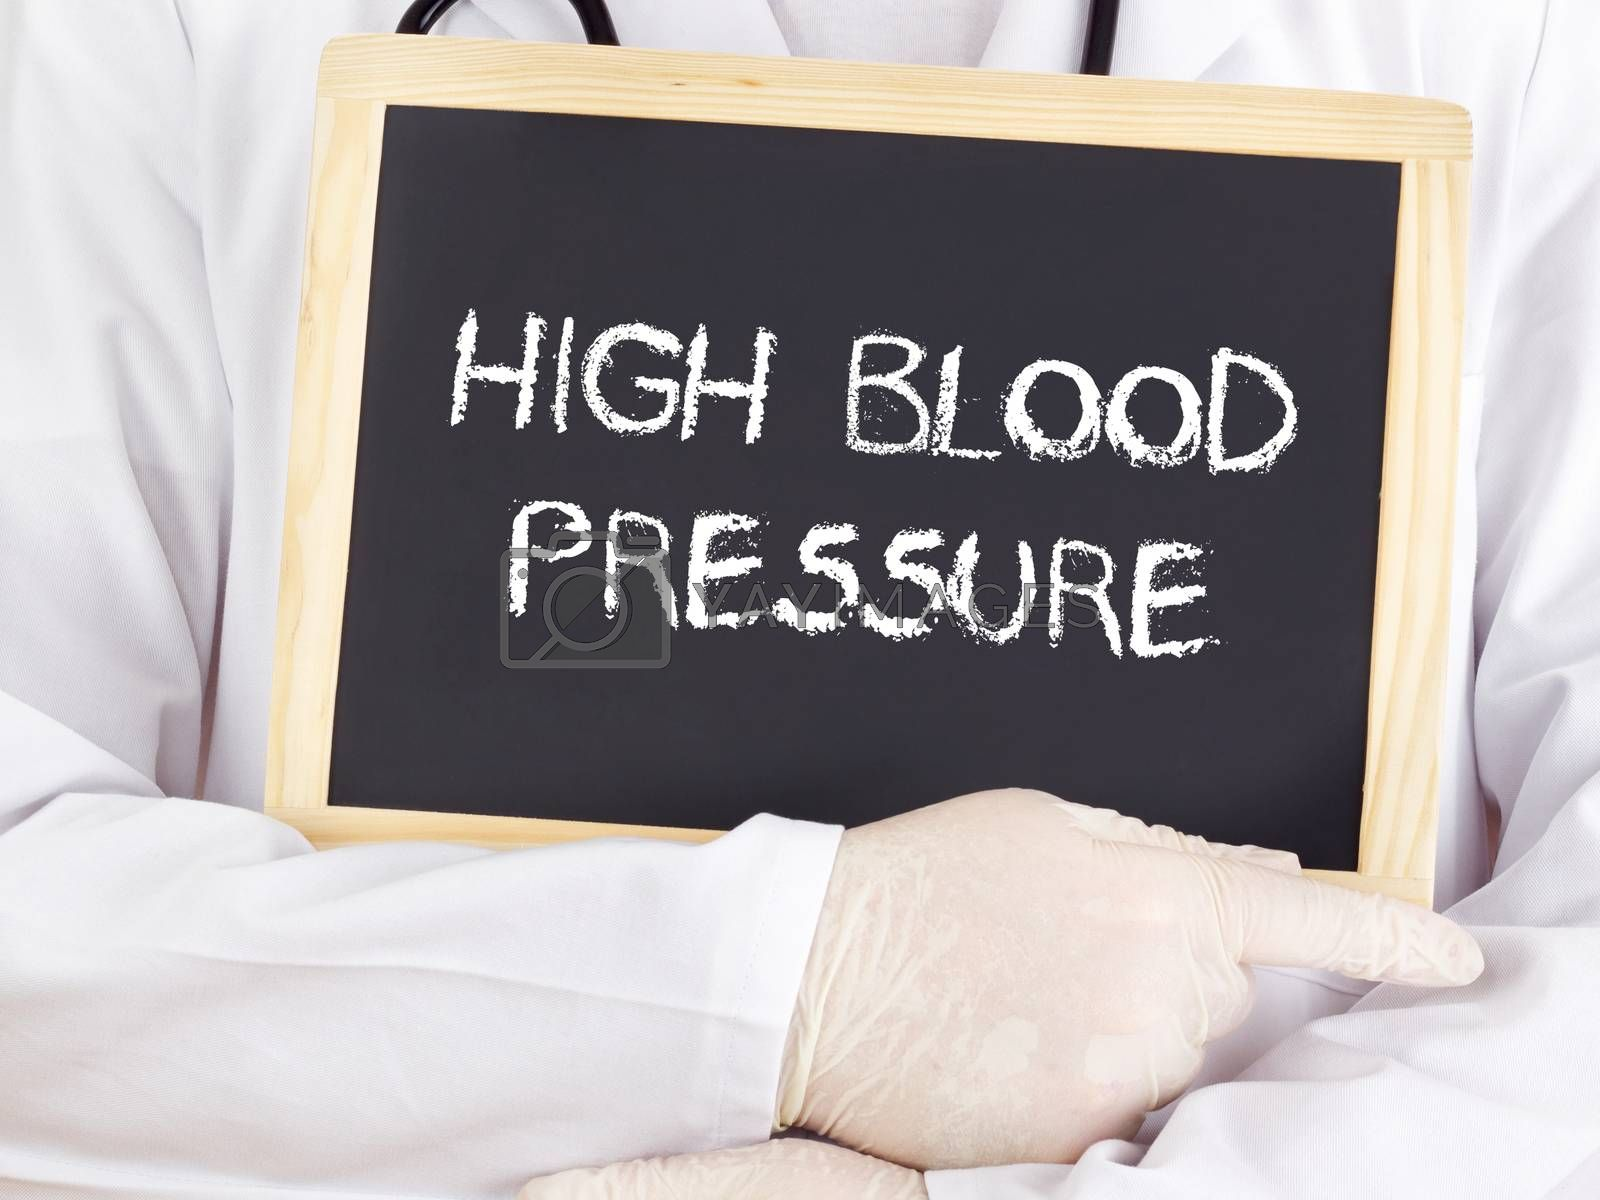 Doctor shows information: high blood pressure by gwolters